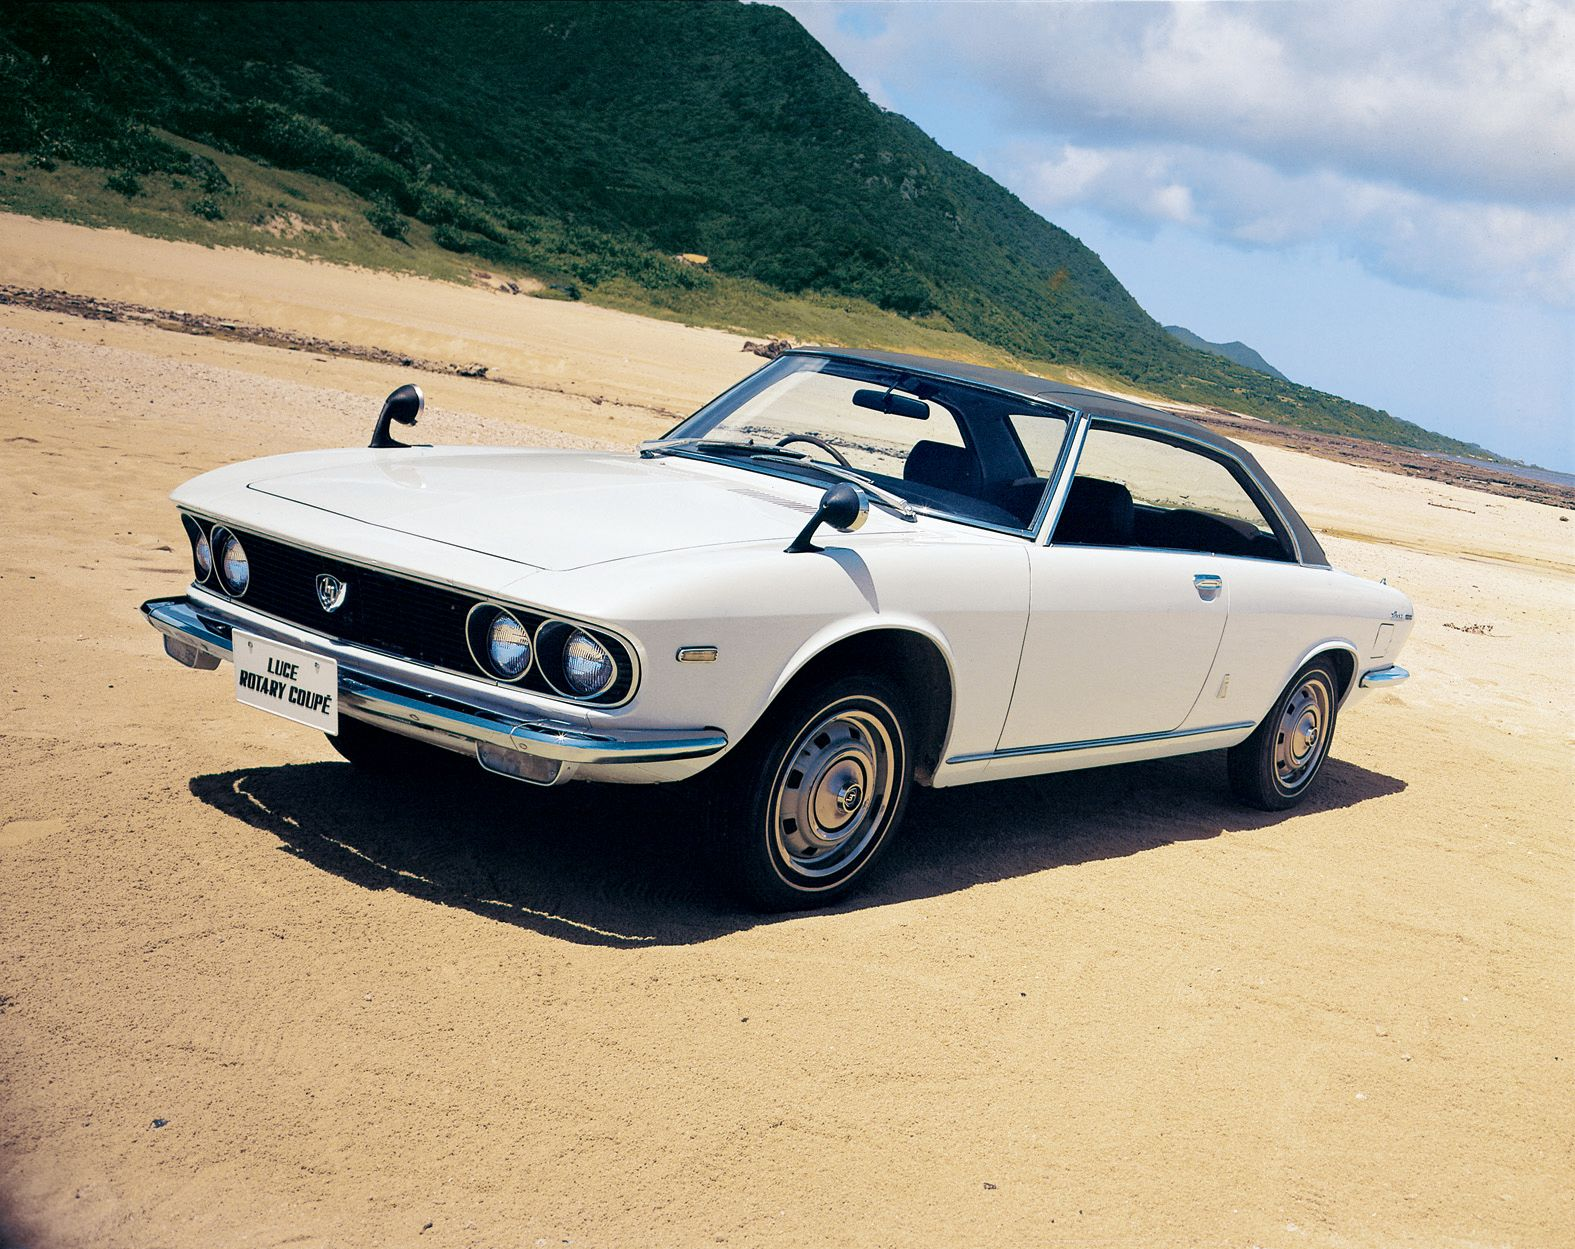 Mazda R130 Luce Rotary Coupe 1969